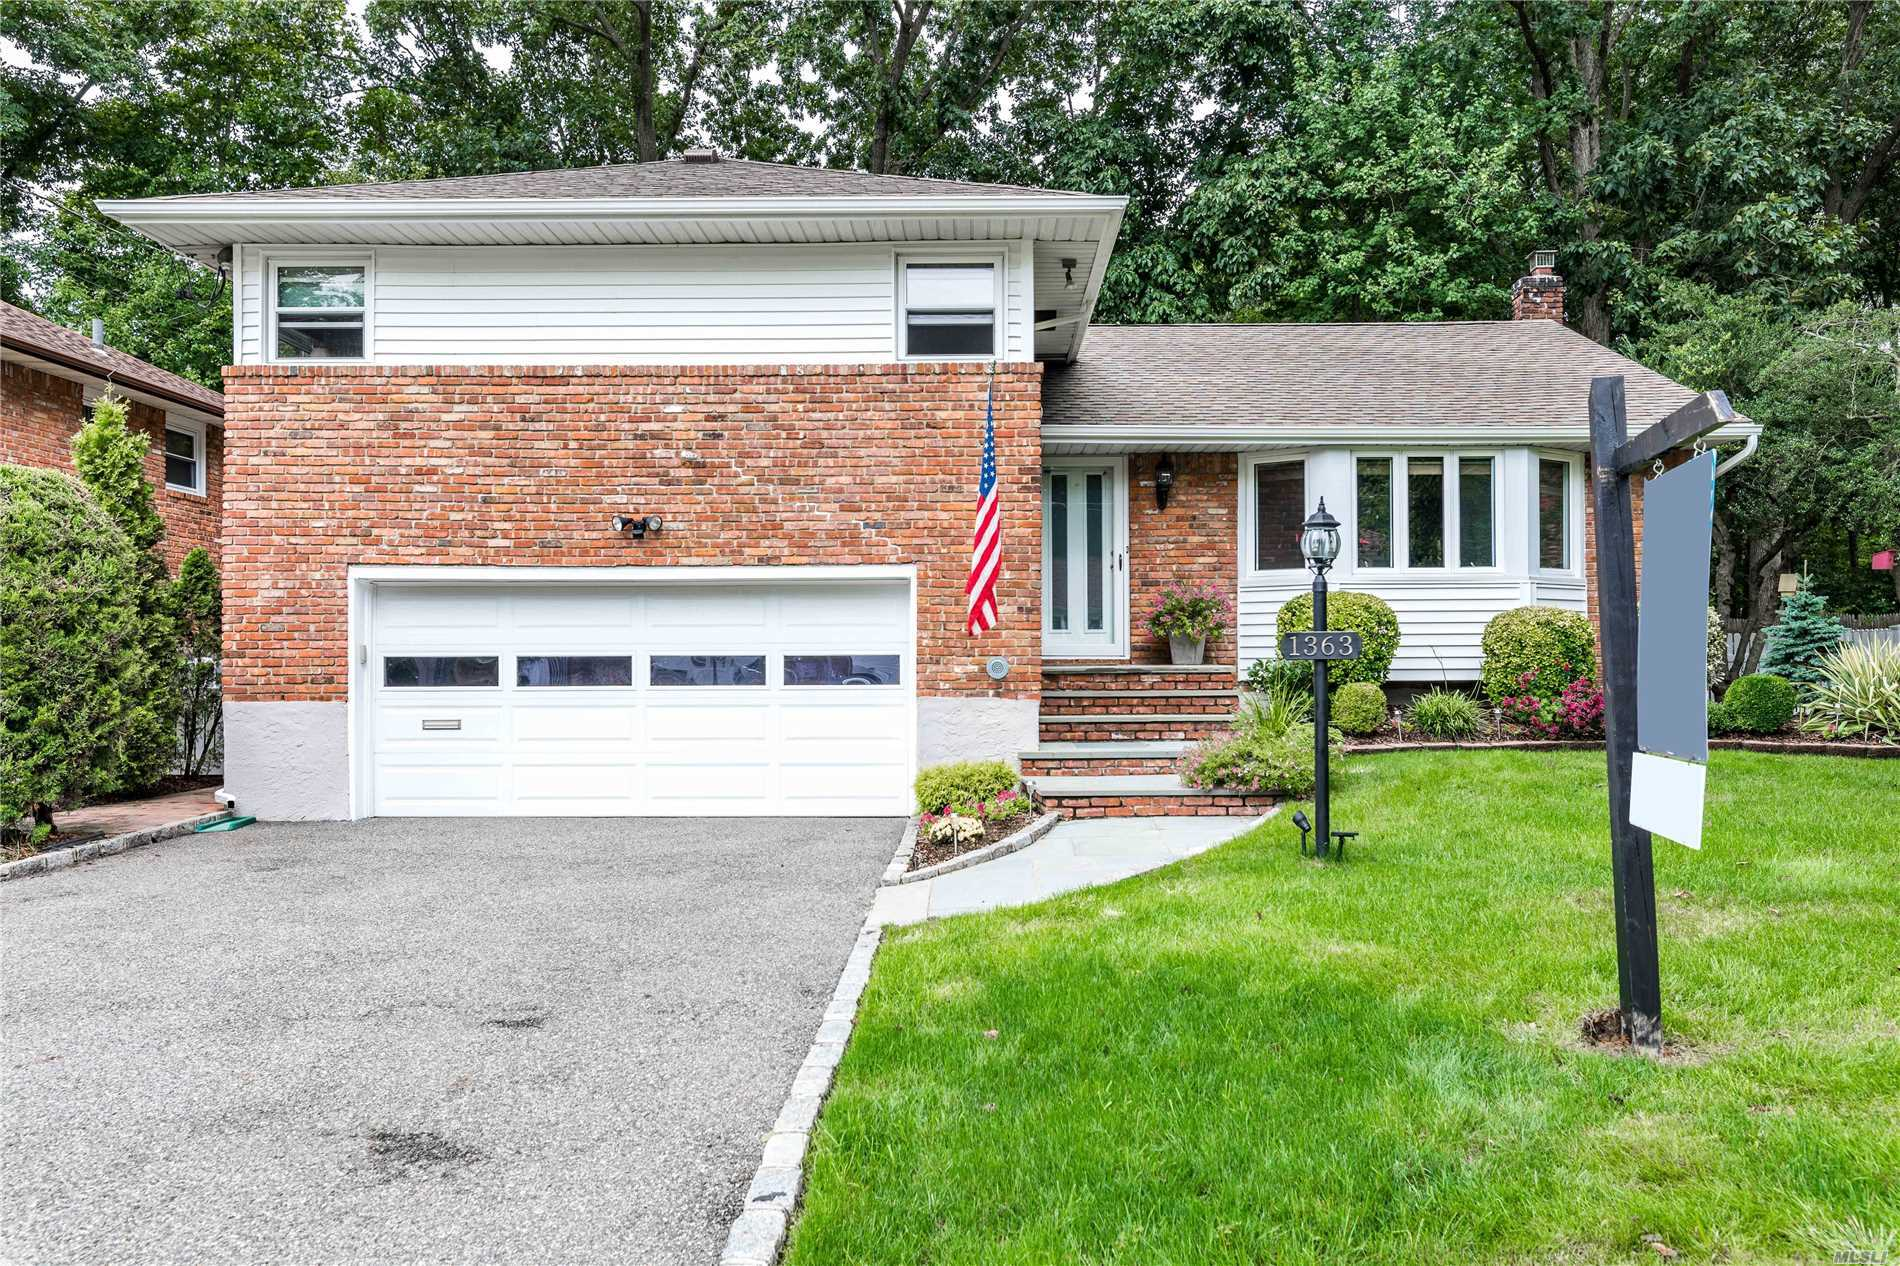 1363 Richmond Ct - East Meadow, New York